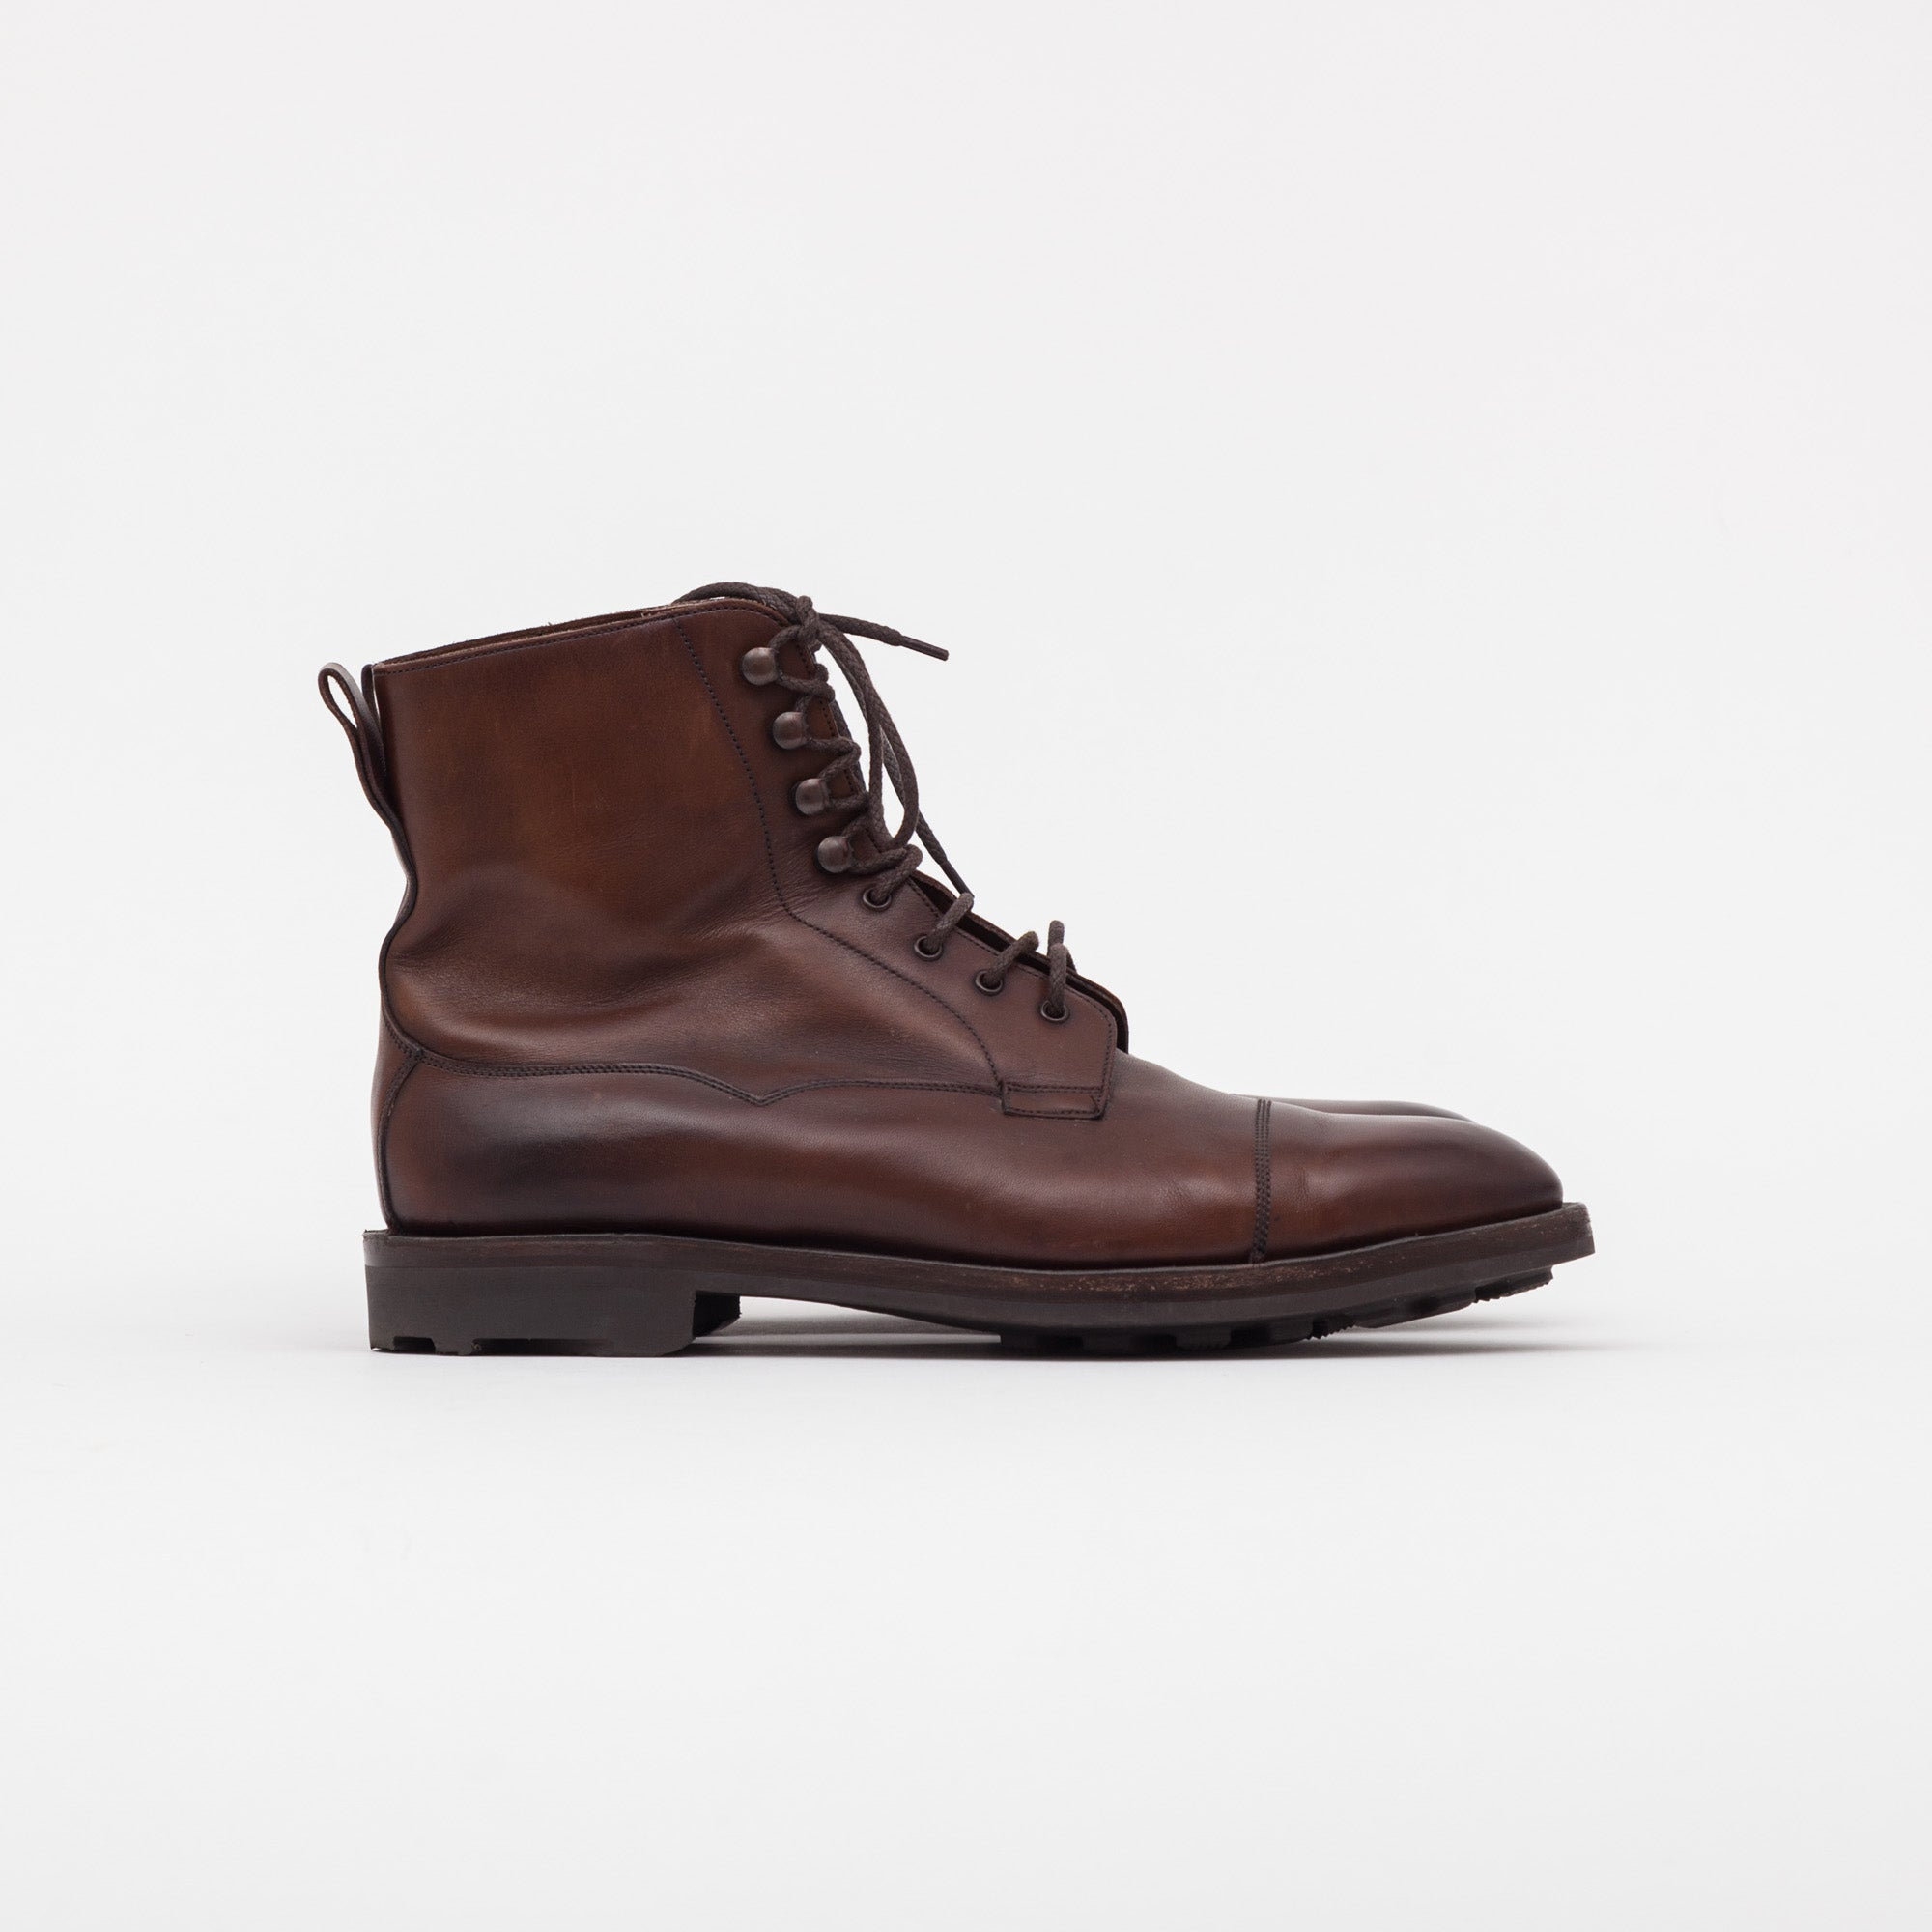 Edward Green Galway Boots (202 Last)